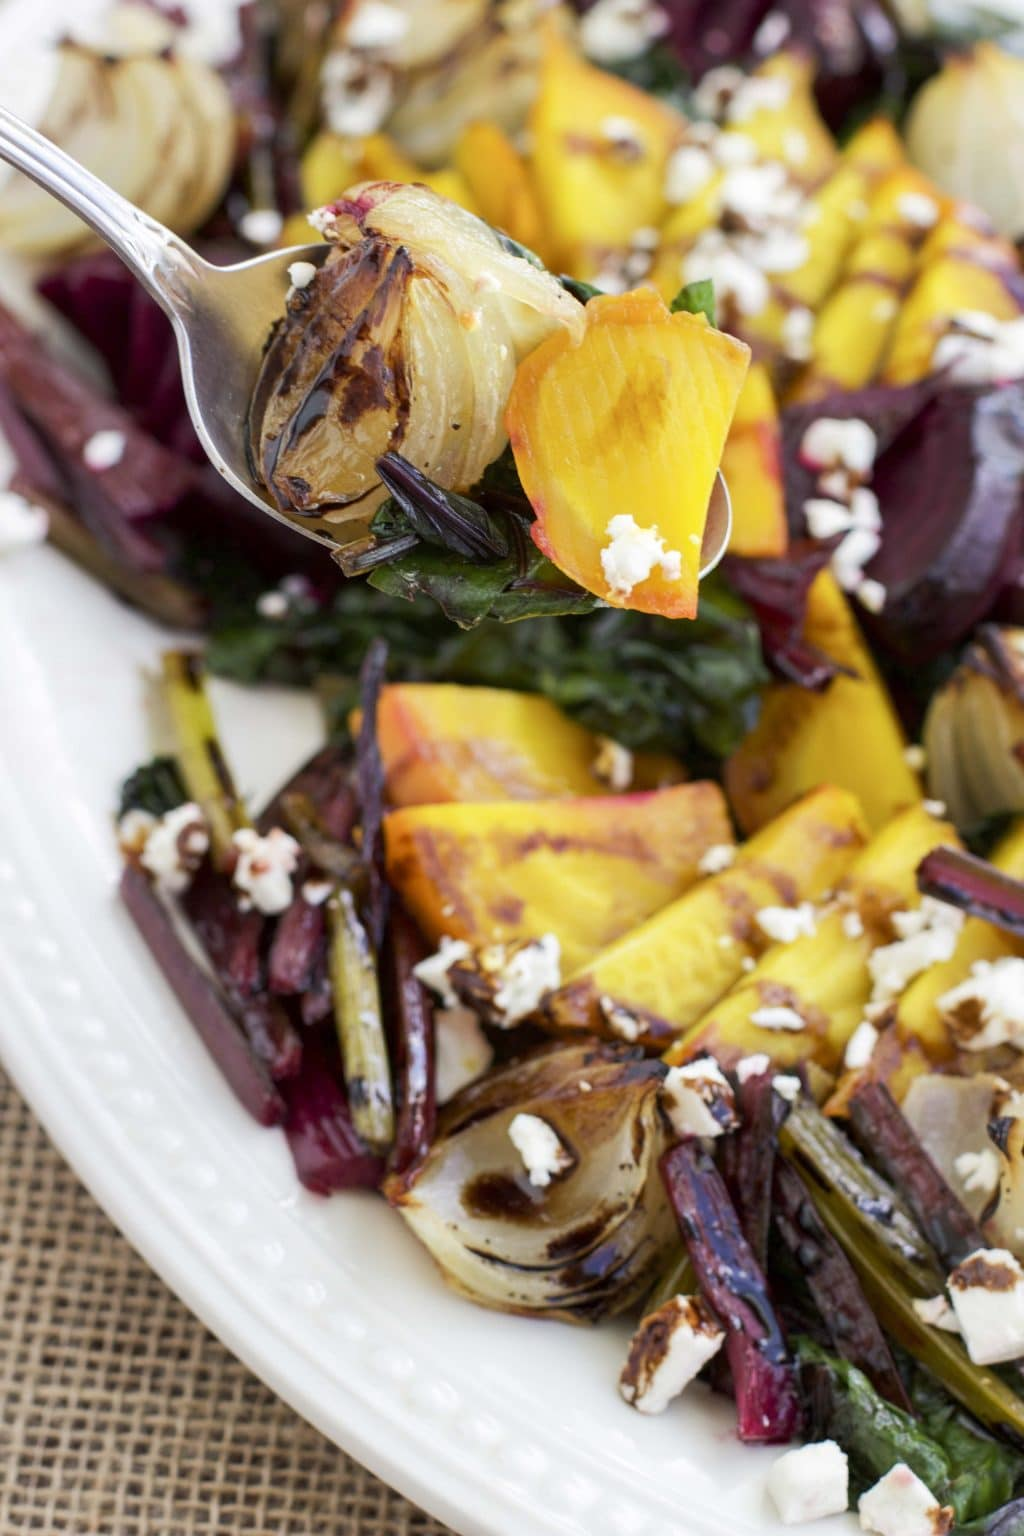 Roasted Beet and Onion Salad with Feta Cheese - Stacey Homemaker